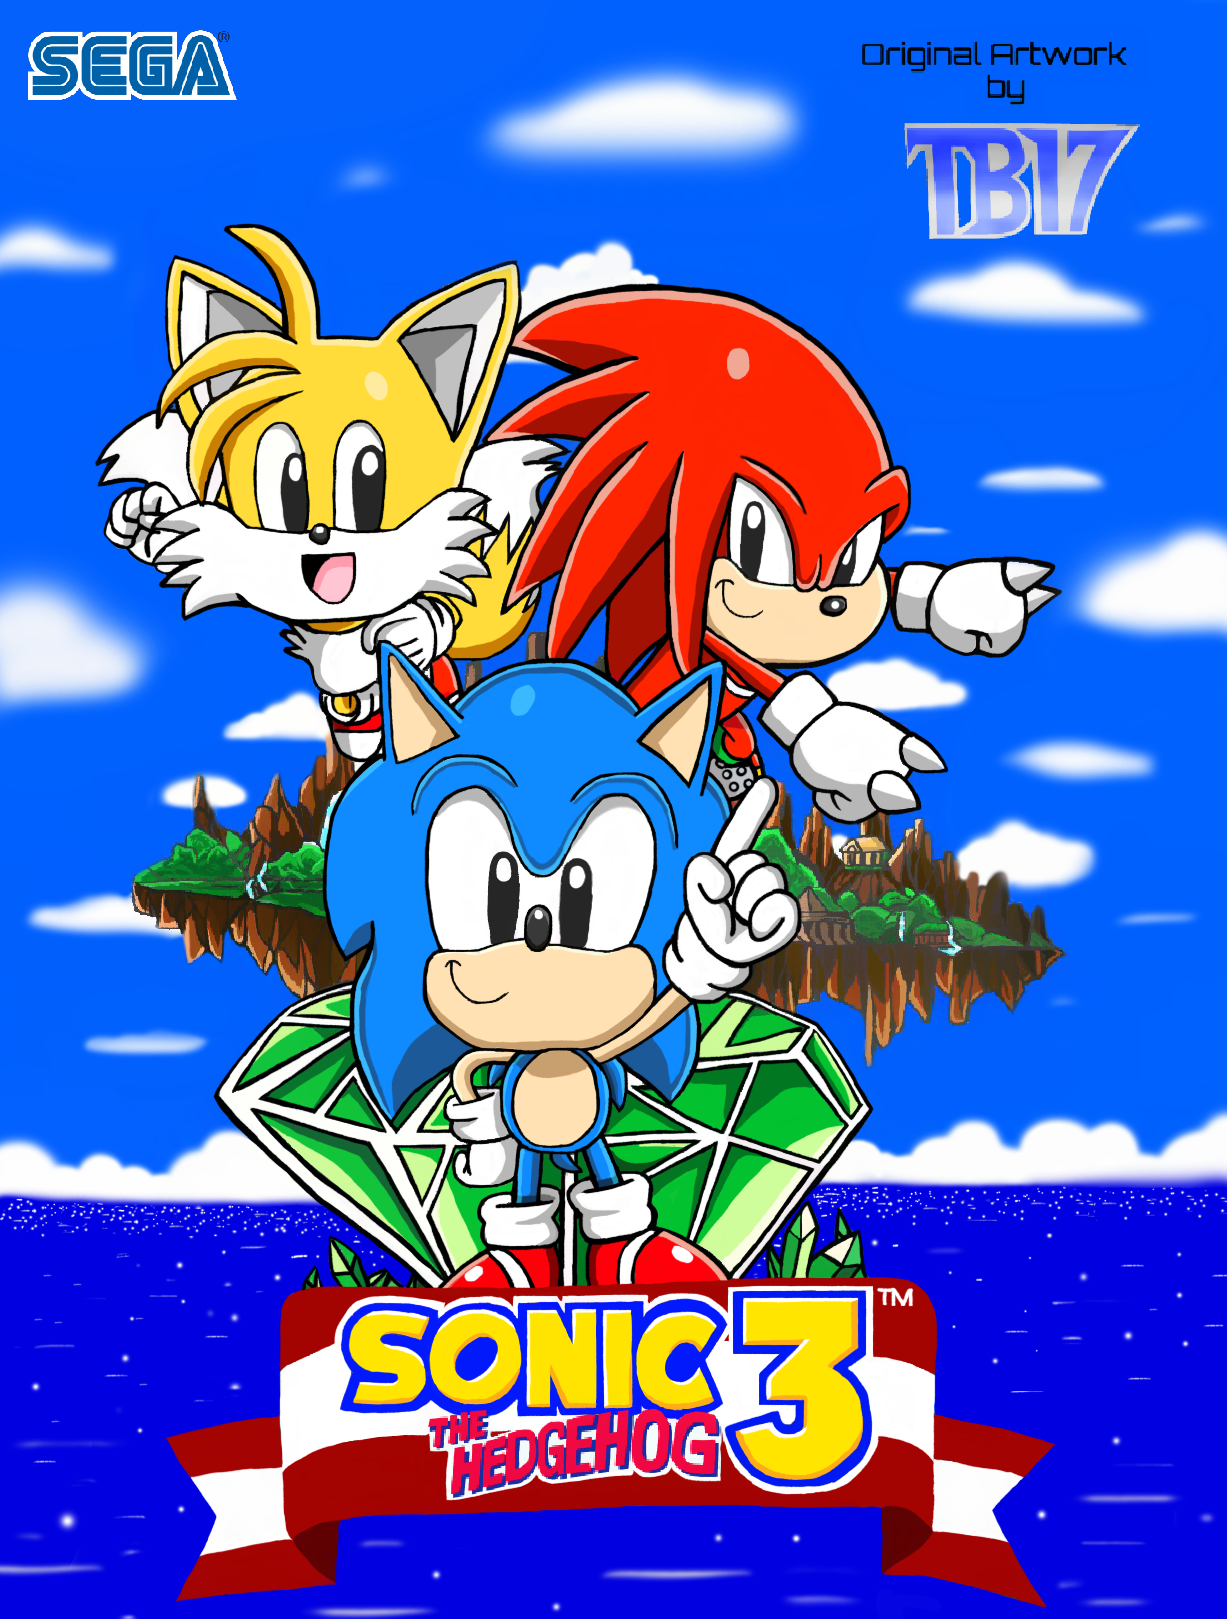 Sonic The Hedgehog 3 And Knuckles Artwork Color By Bluetyphoon17 On Deviantart